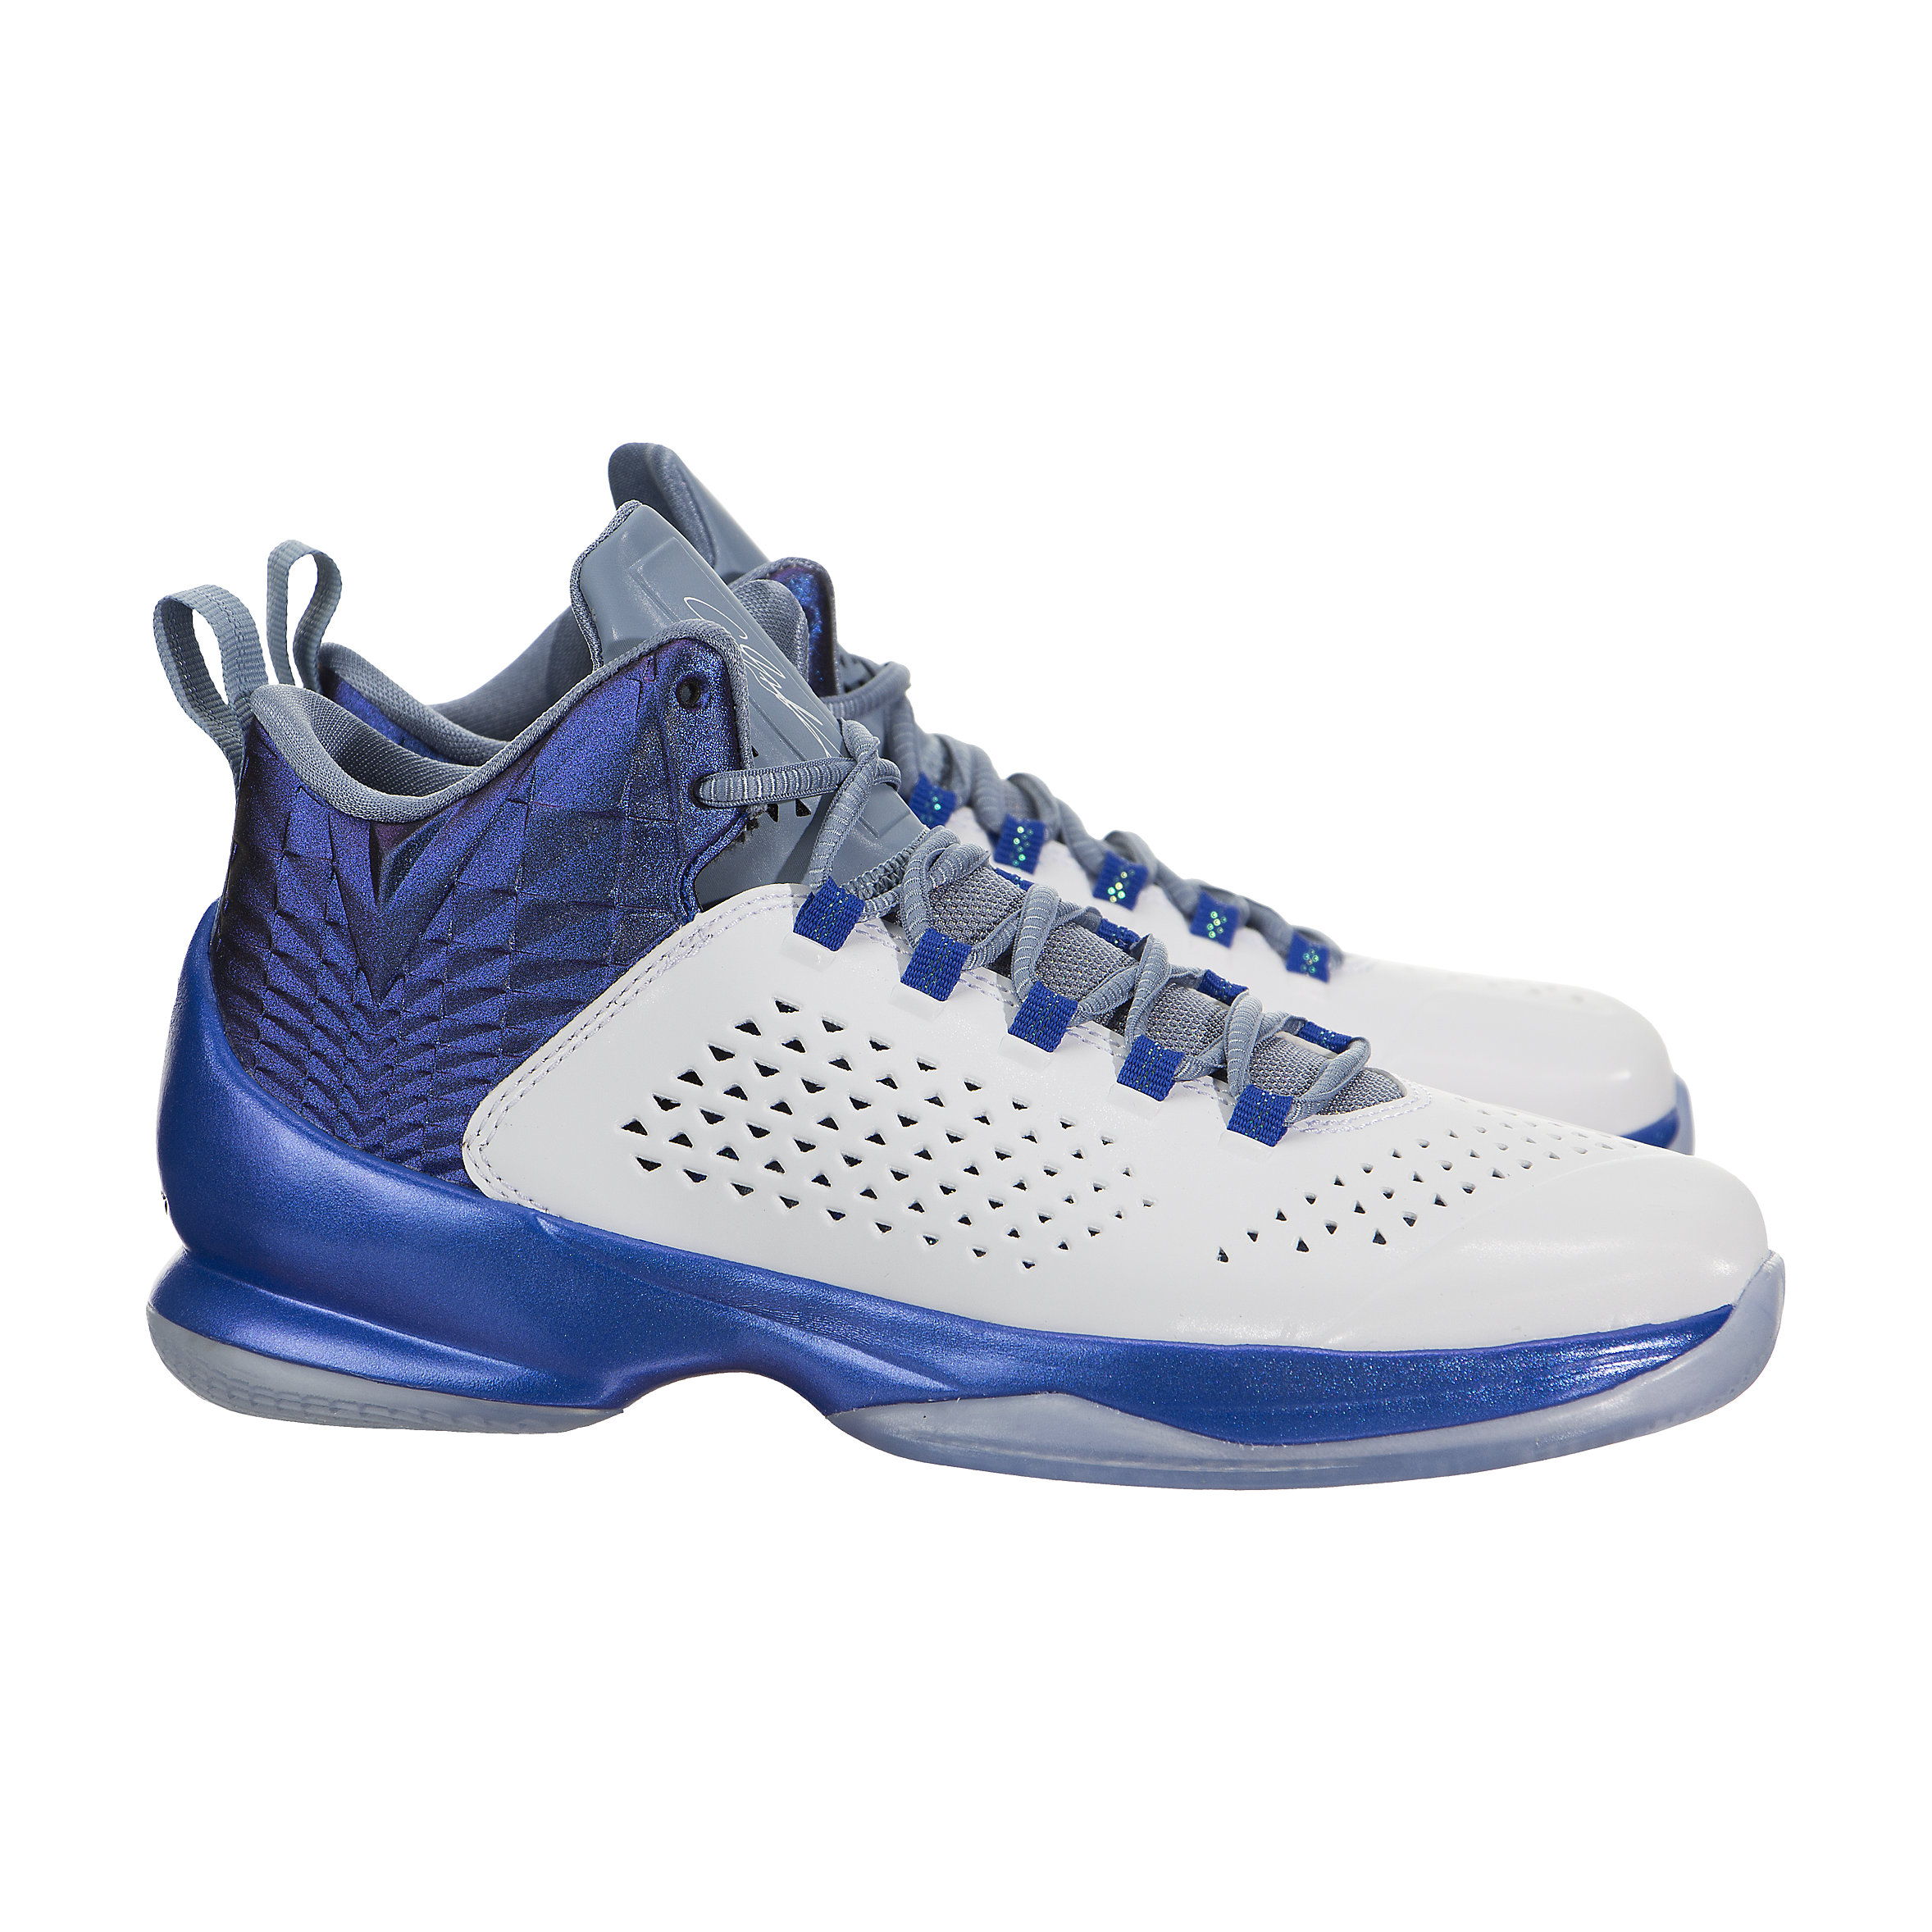 Jordan Melo M11 (Kids) by Jordan. $ $ 64 FREE Shipping on eligible orders. 1 out of 5 stars 1. Product Description Jordan Melo M11 Basketball Shoes. Jordan Melo M13 Mens basketball-shoes _9 - Gym Red/Gym Red-Black. by Nike. $ $ FREE Shipping on eligible orders.